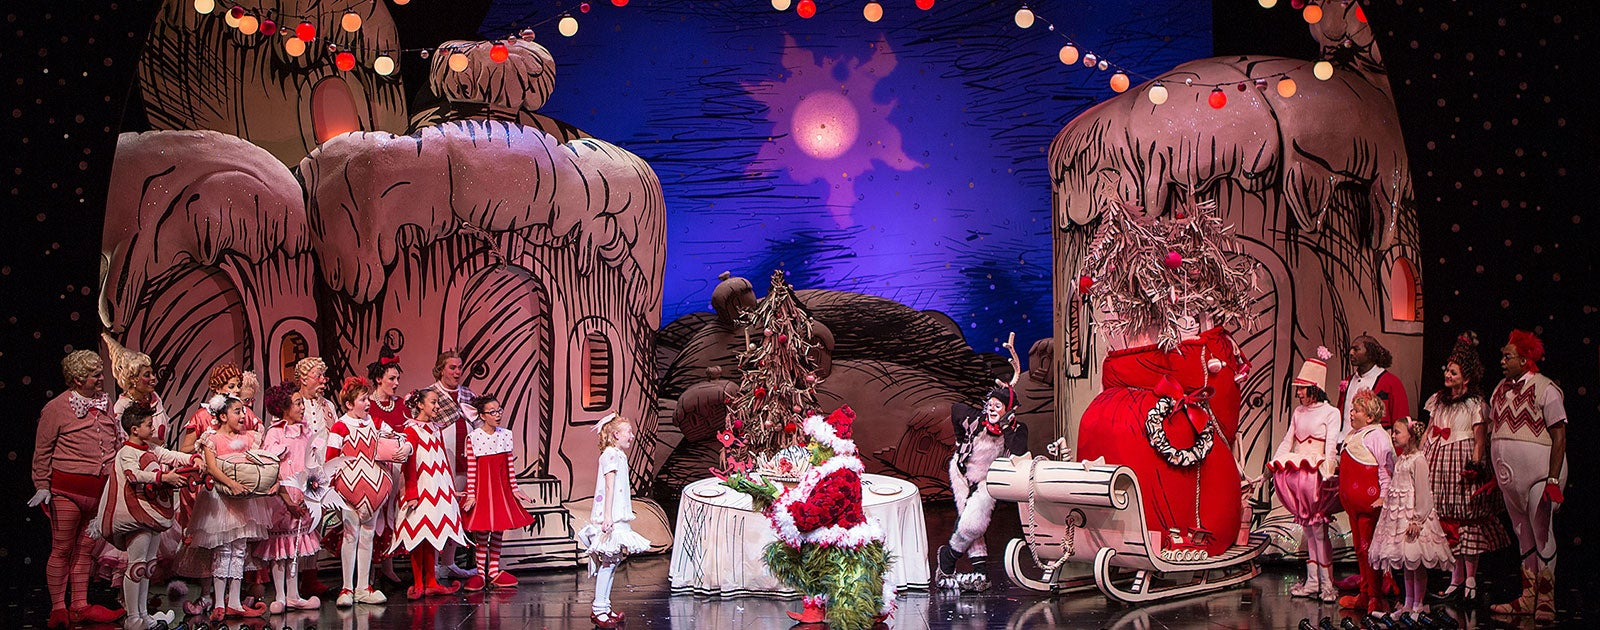 How The Grinch Stole Christmas The Musical 2019 Dr. Seuss' How the Grinch Stole Christmas! The Musical | Stifel